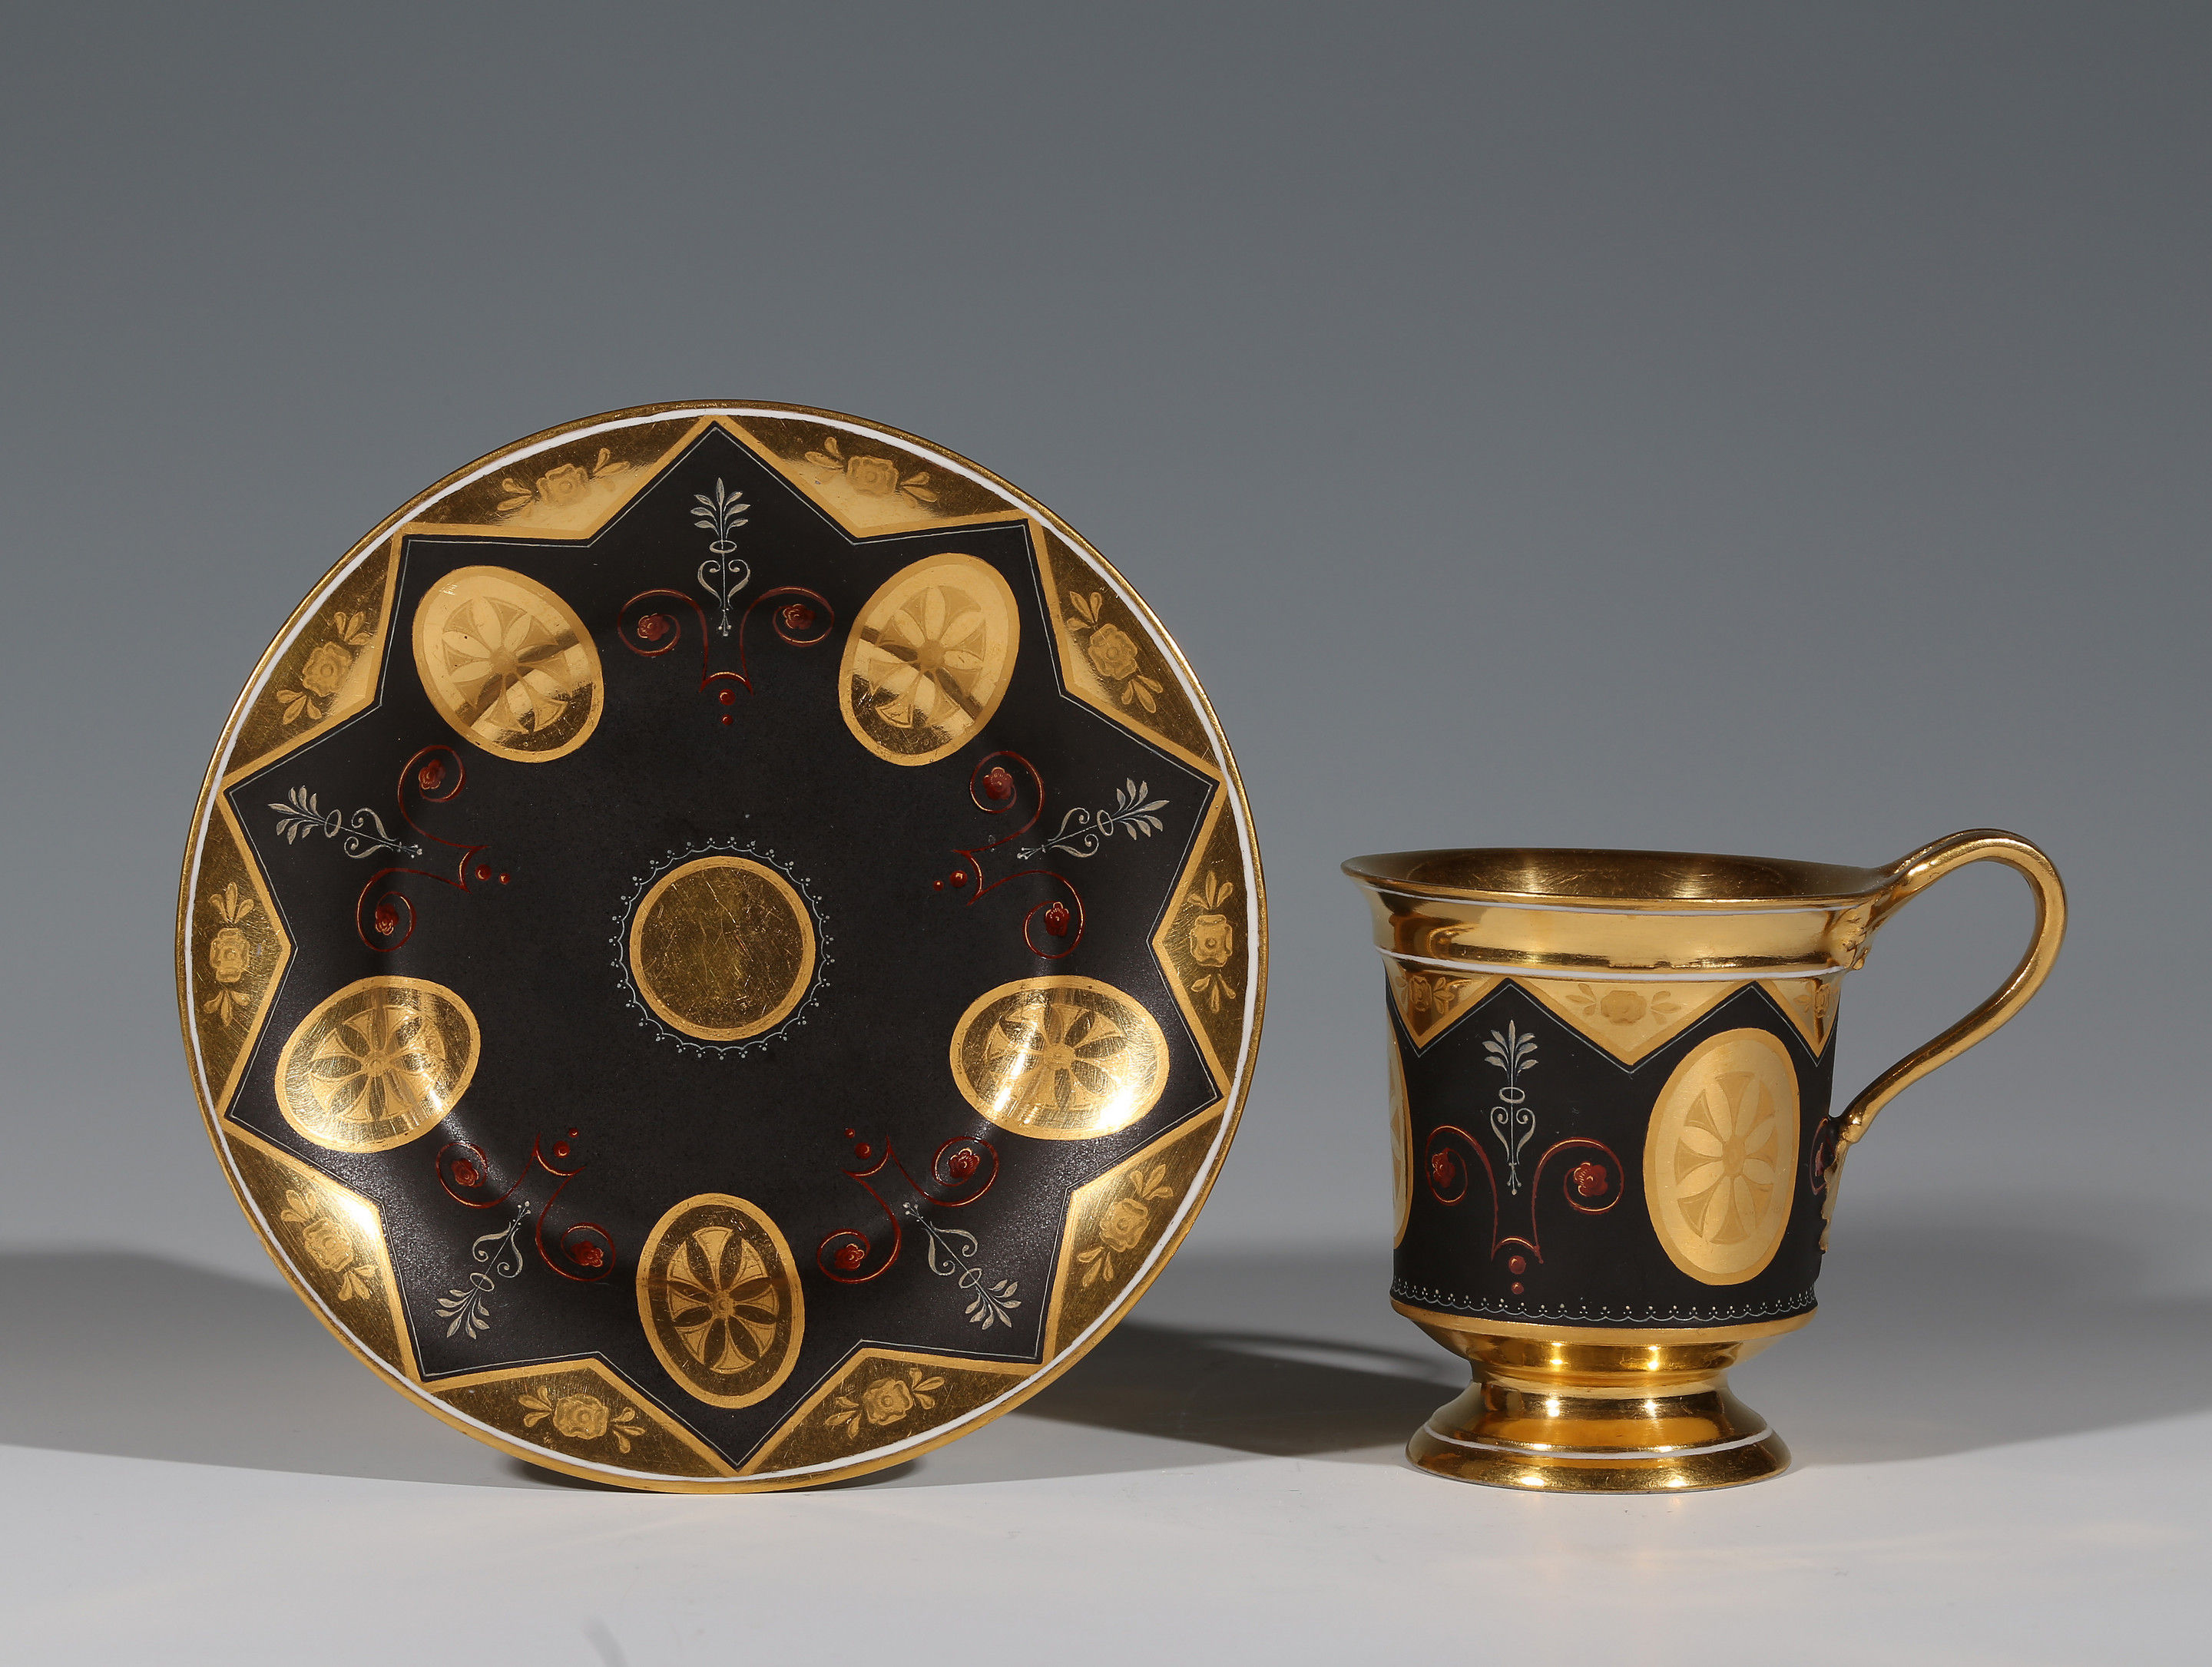 A Vienna Gold and black ground cup and saucer